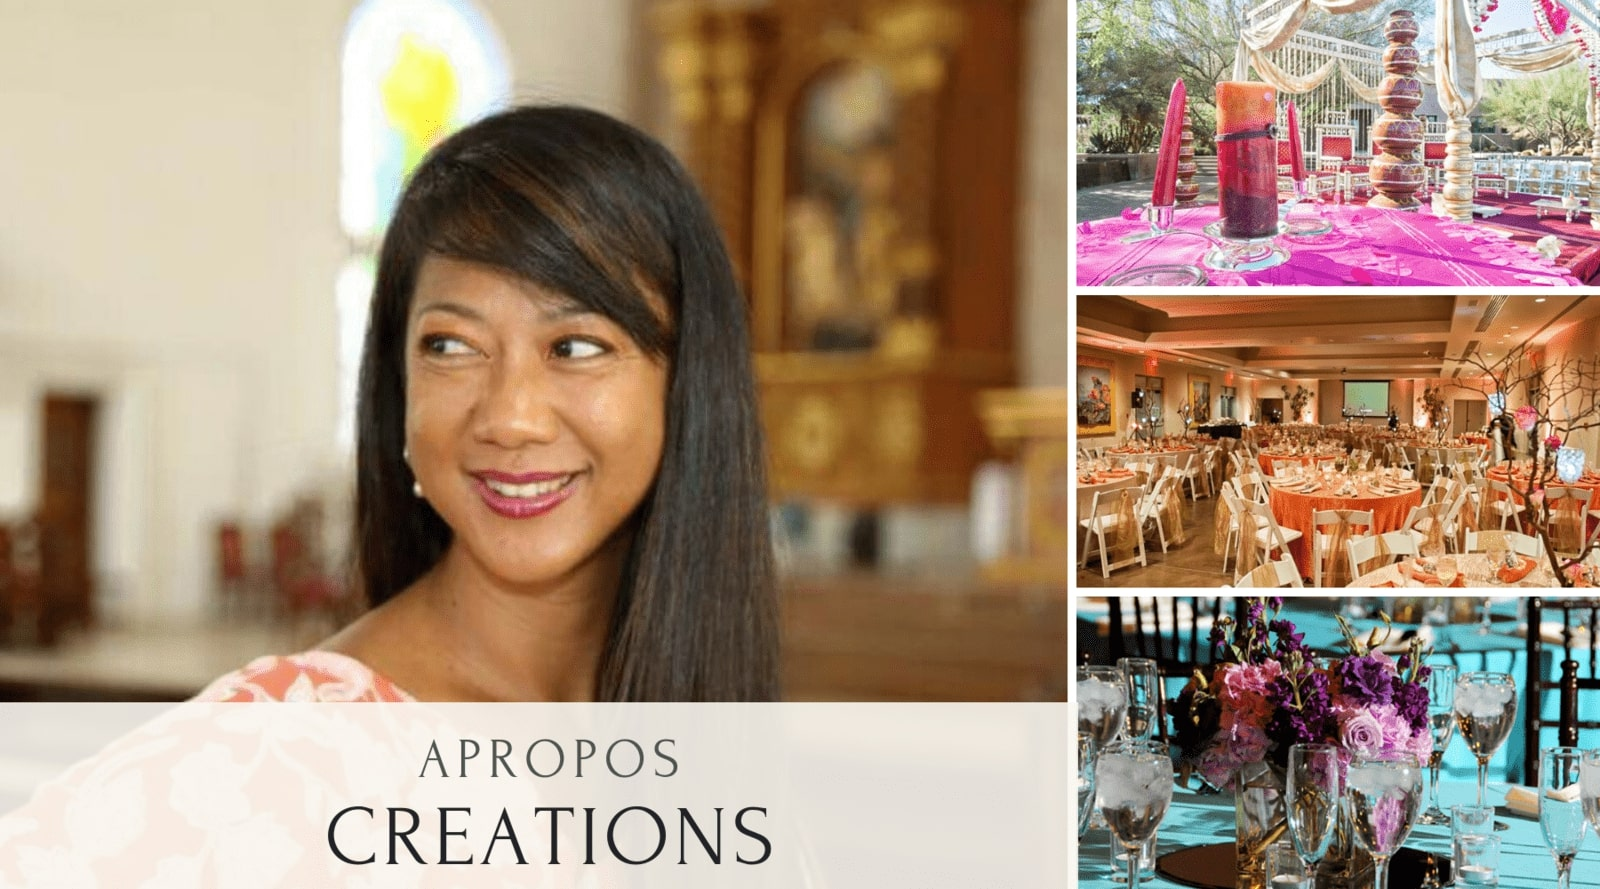 Today's Expert: Jo Ann M. Grant from Apropos Creations, LLC